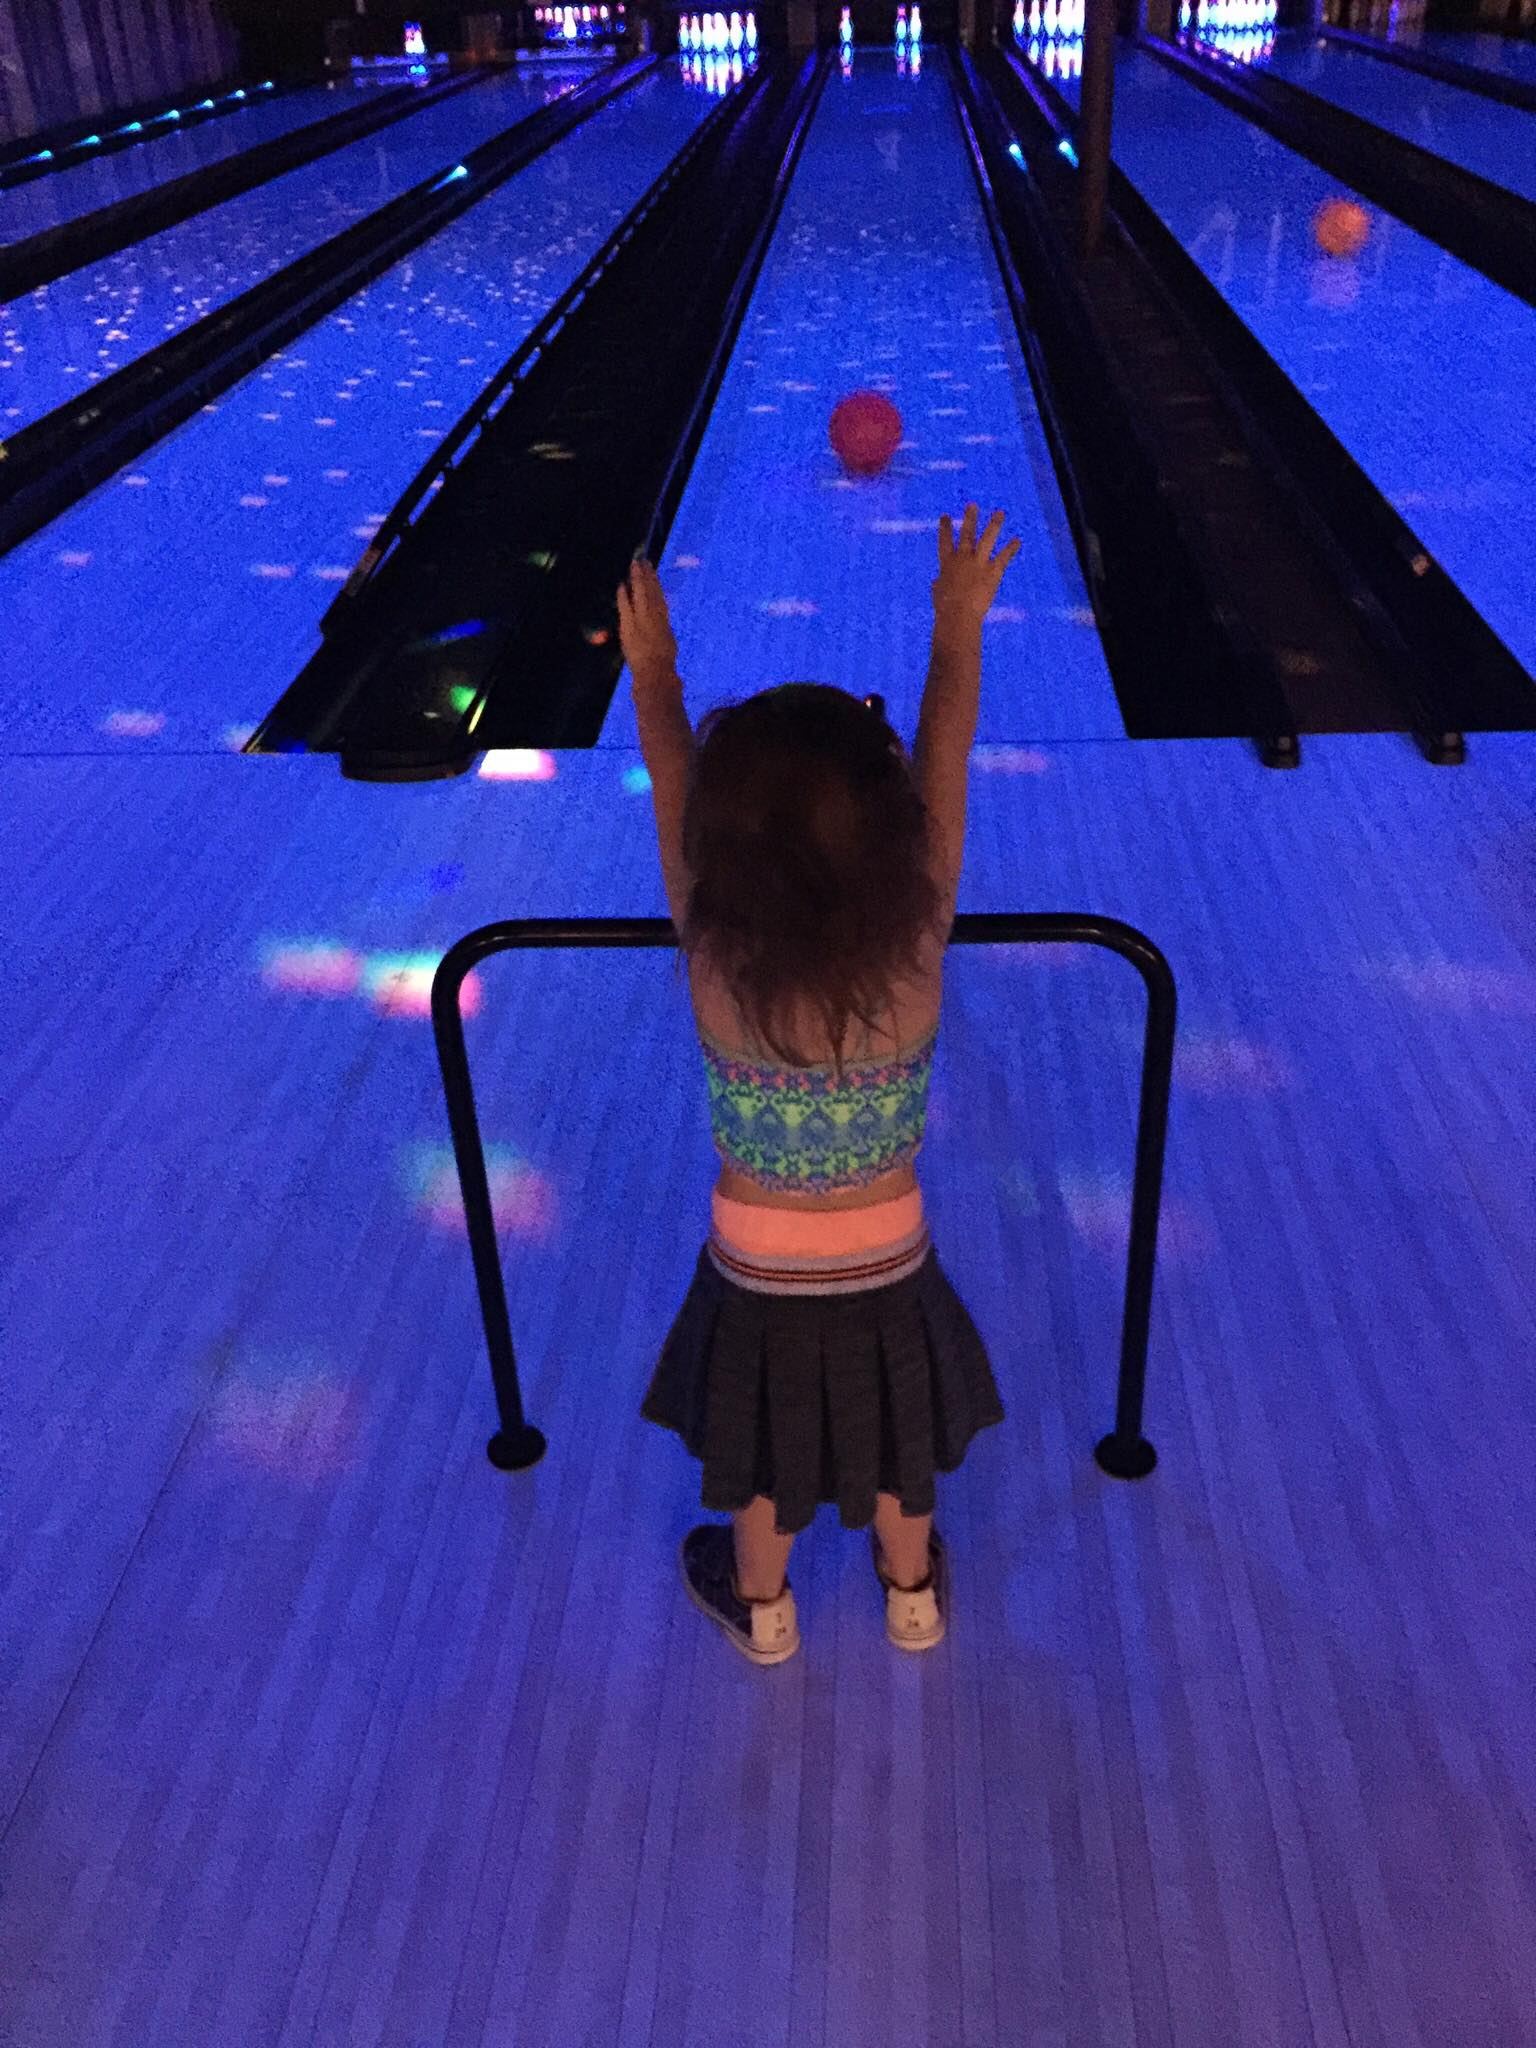 cosmic bowling taos gutters bowling alley